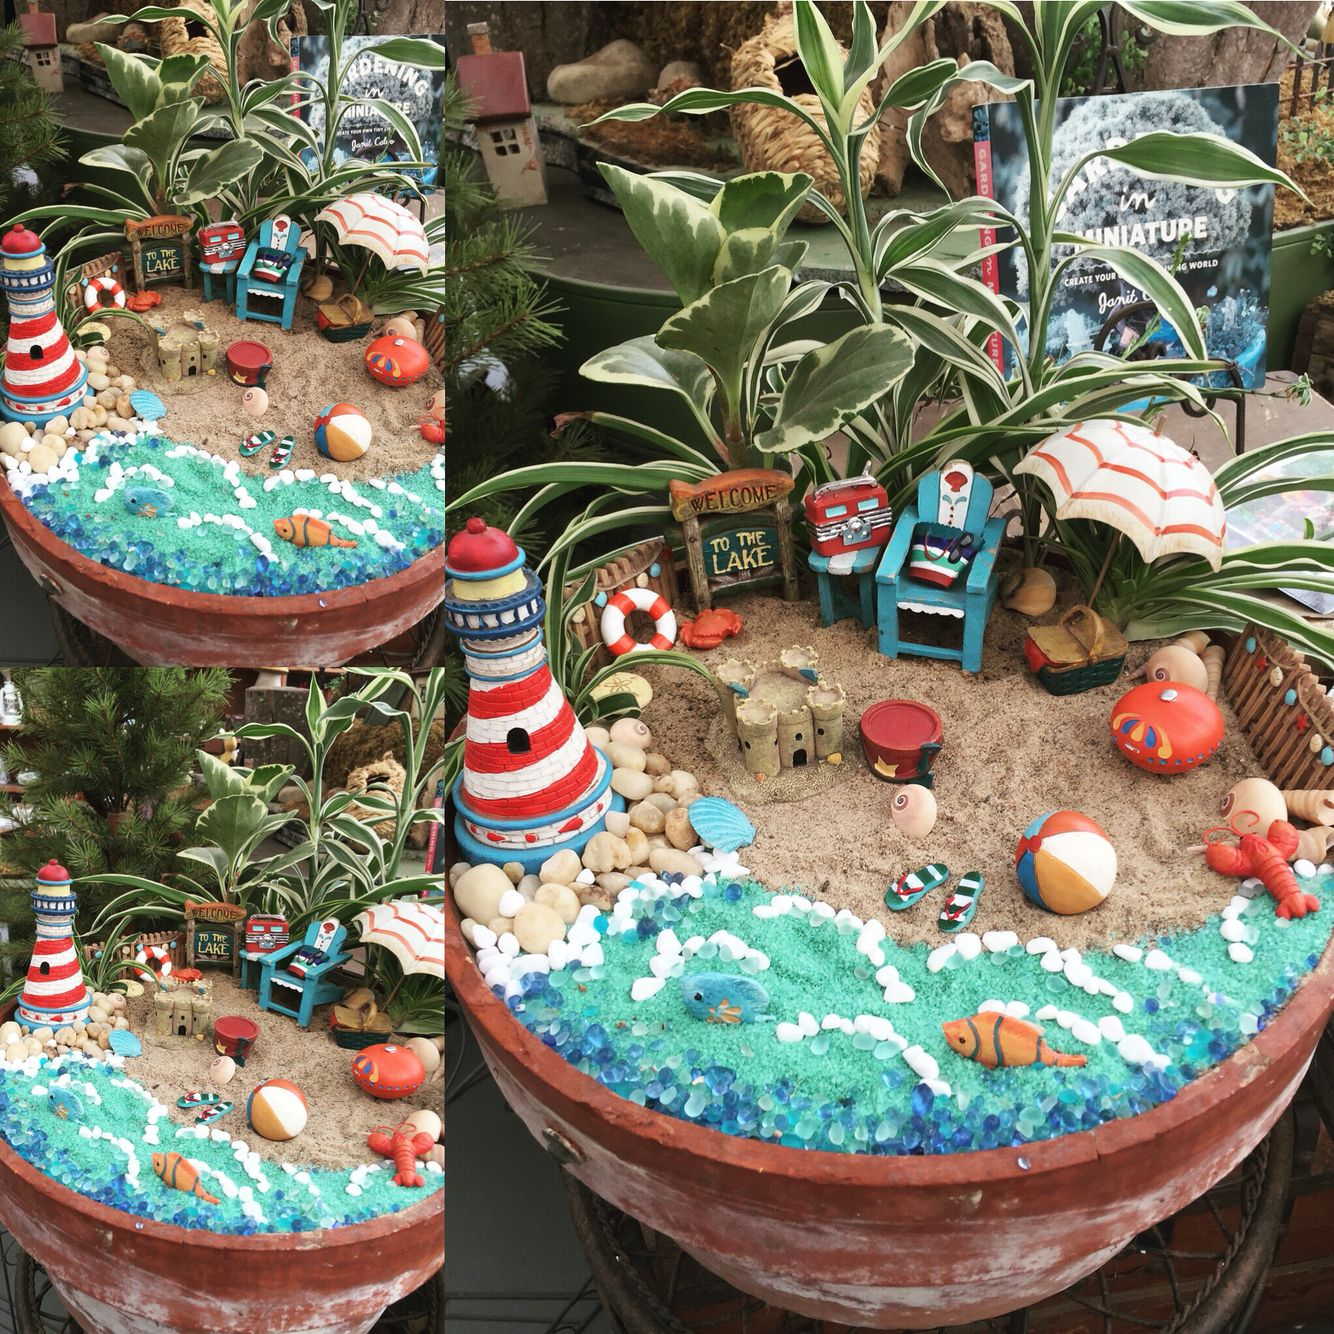 Beach Themed Fairy Garden. #fairygarden #fairyhome #beach #fairy #garden #